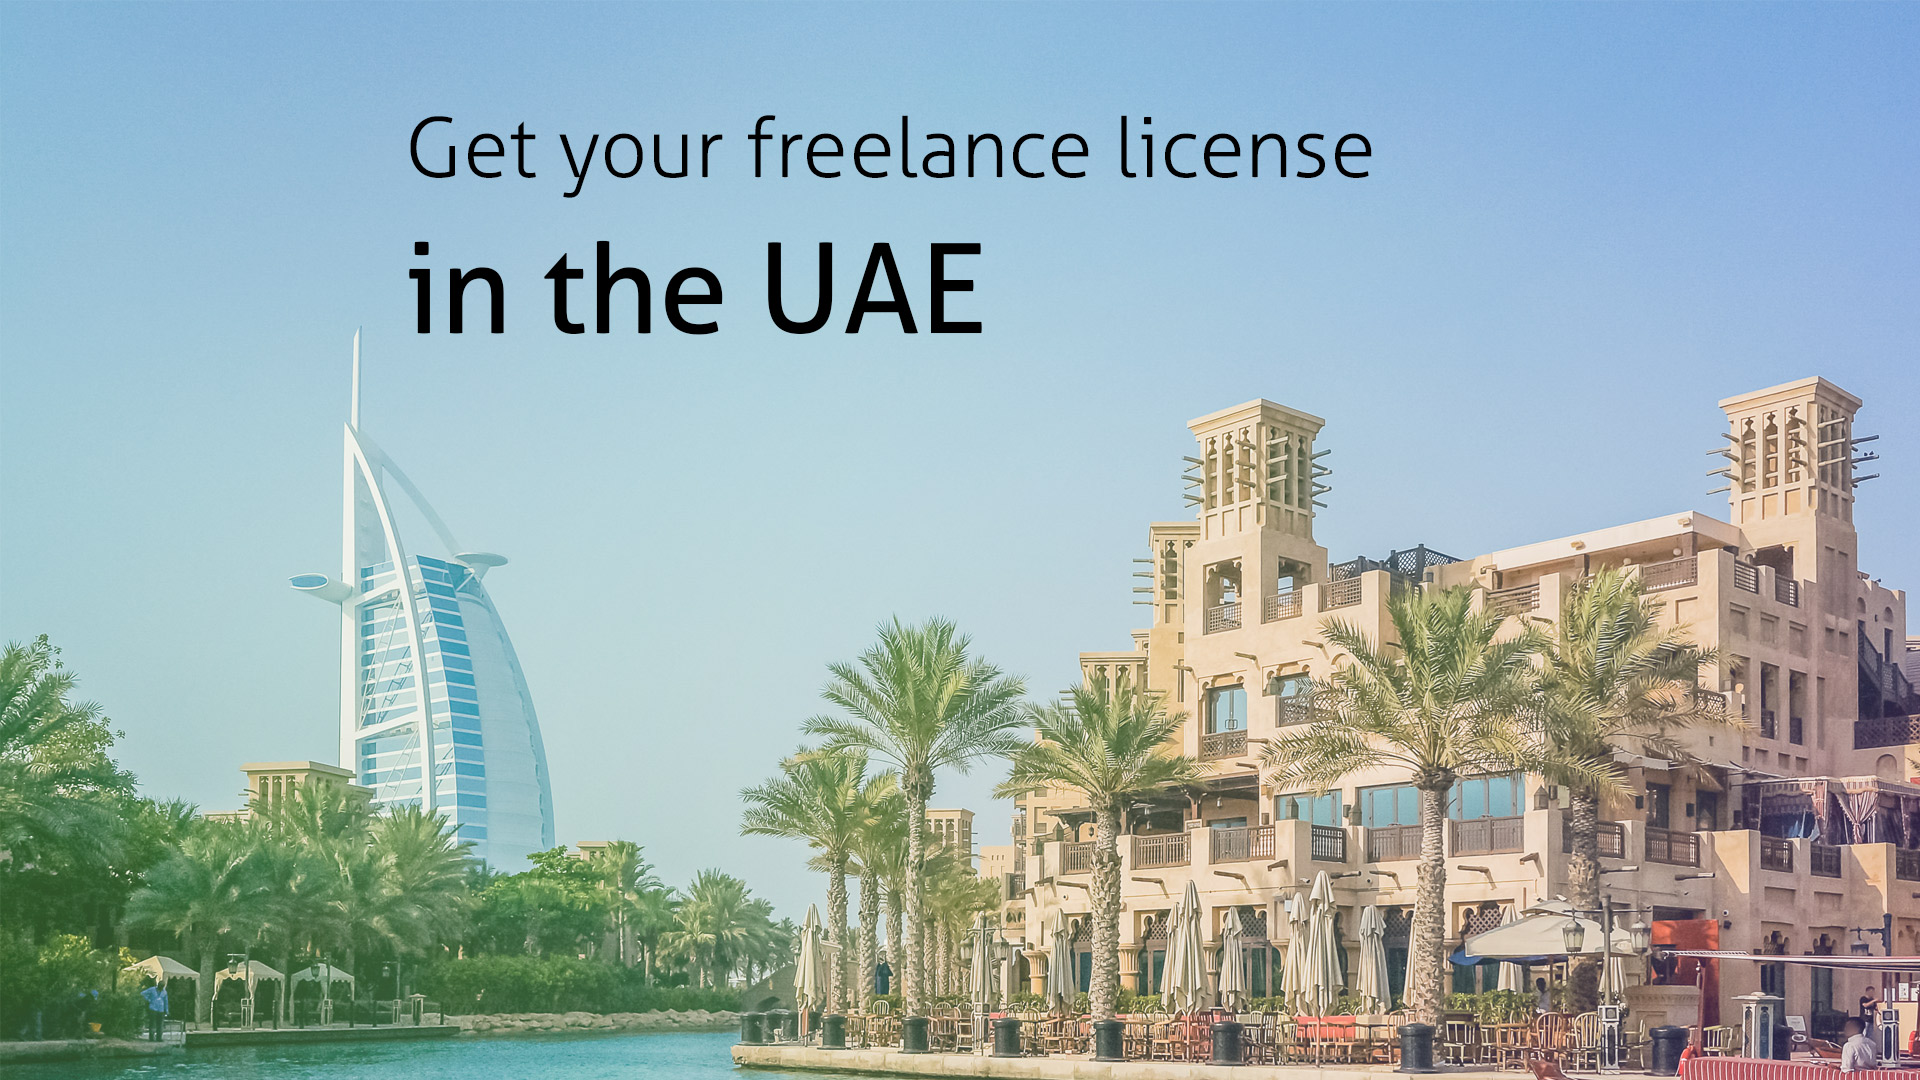 Get your freelance license in UAE